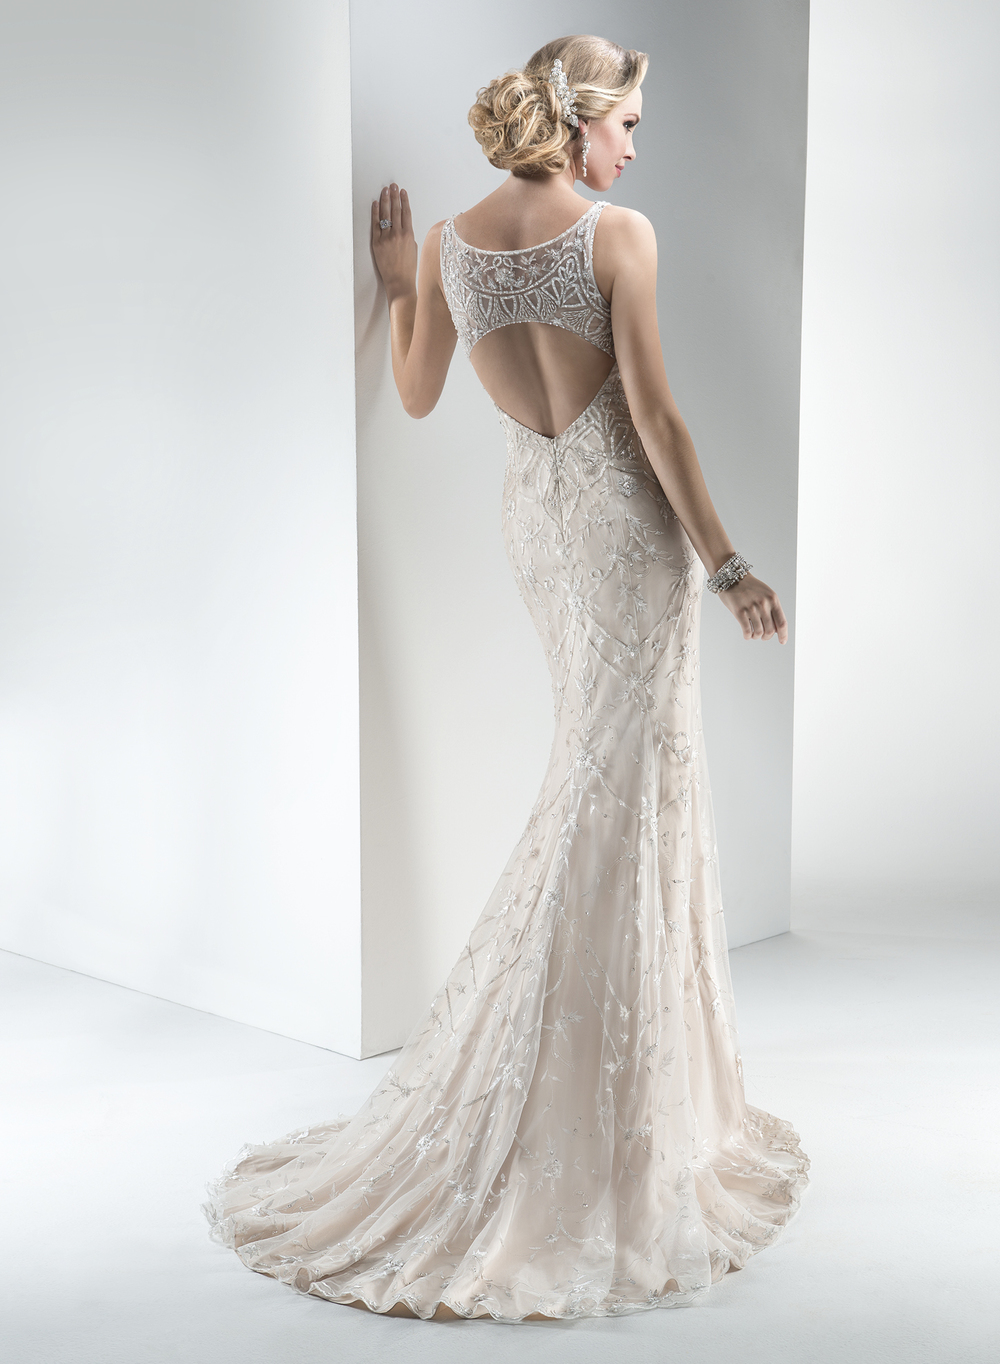 """""""Indiana"""" by Maggie Sottero"""